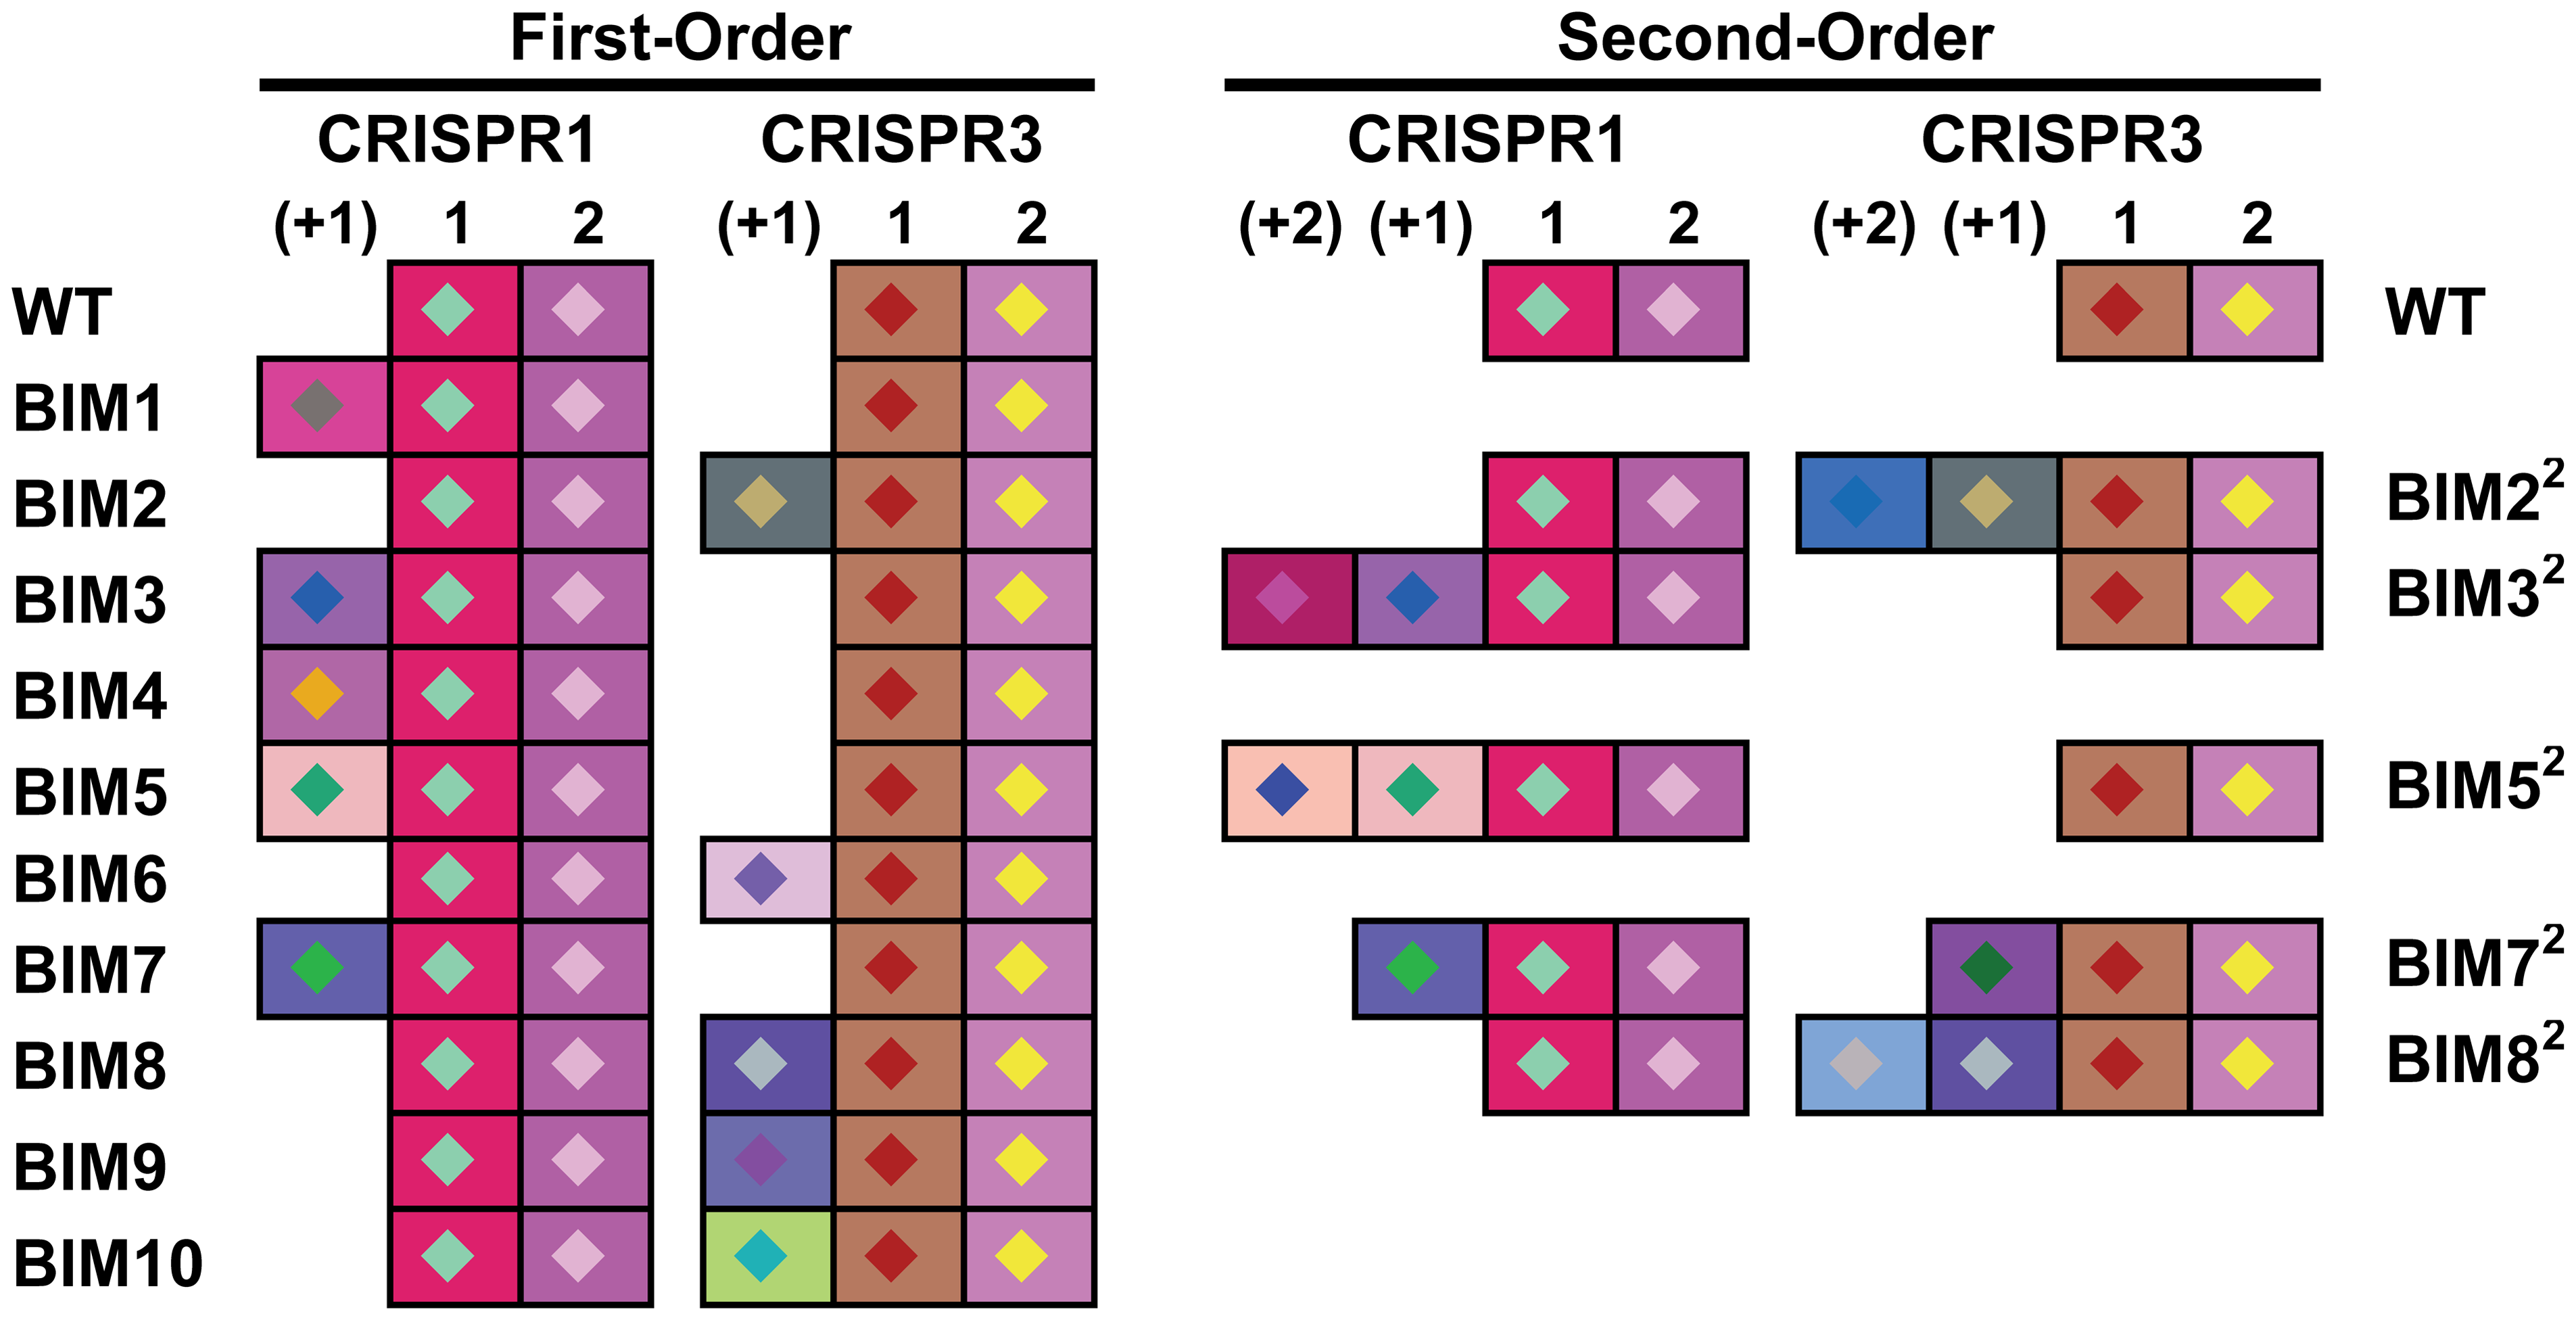 Graphical representation of spacers across the two CRISPR loci for <i>S. thermophilus</i> BIMs.